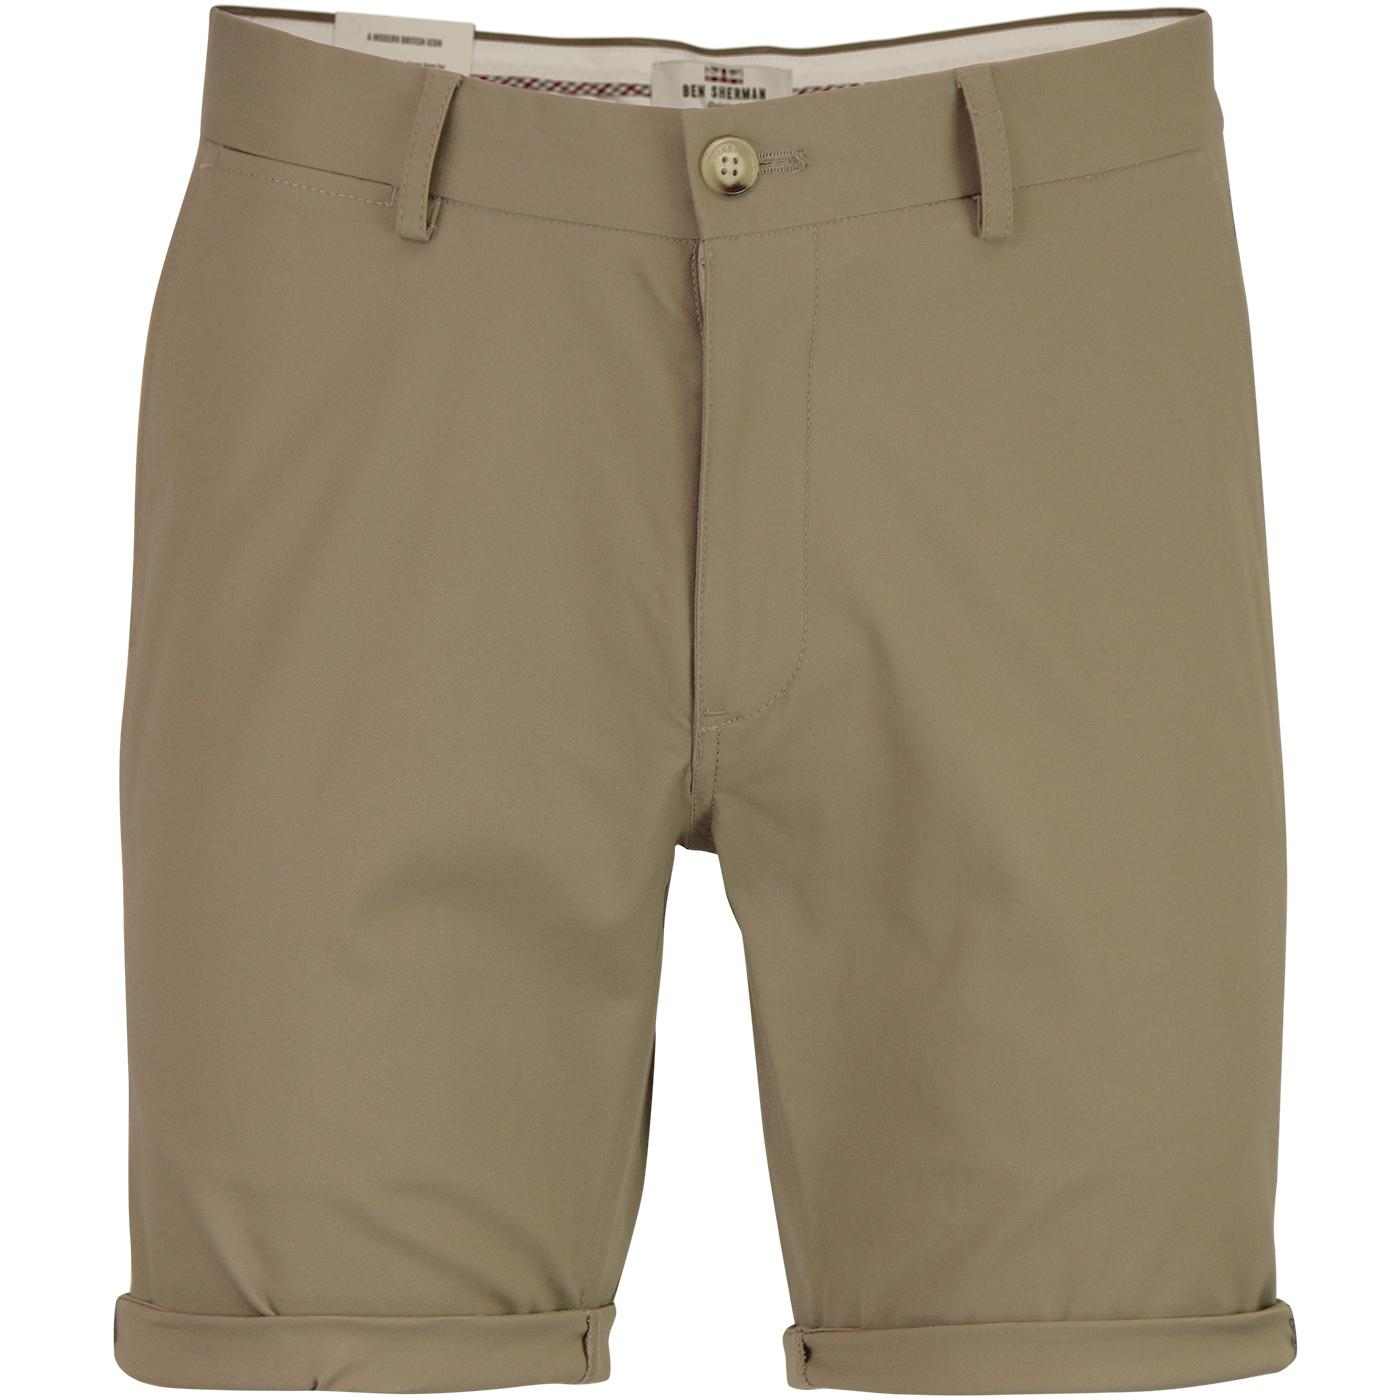 BEN SHERMAN Men's Retro Mod Chino Shorts (Stone)